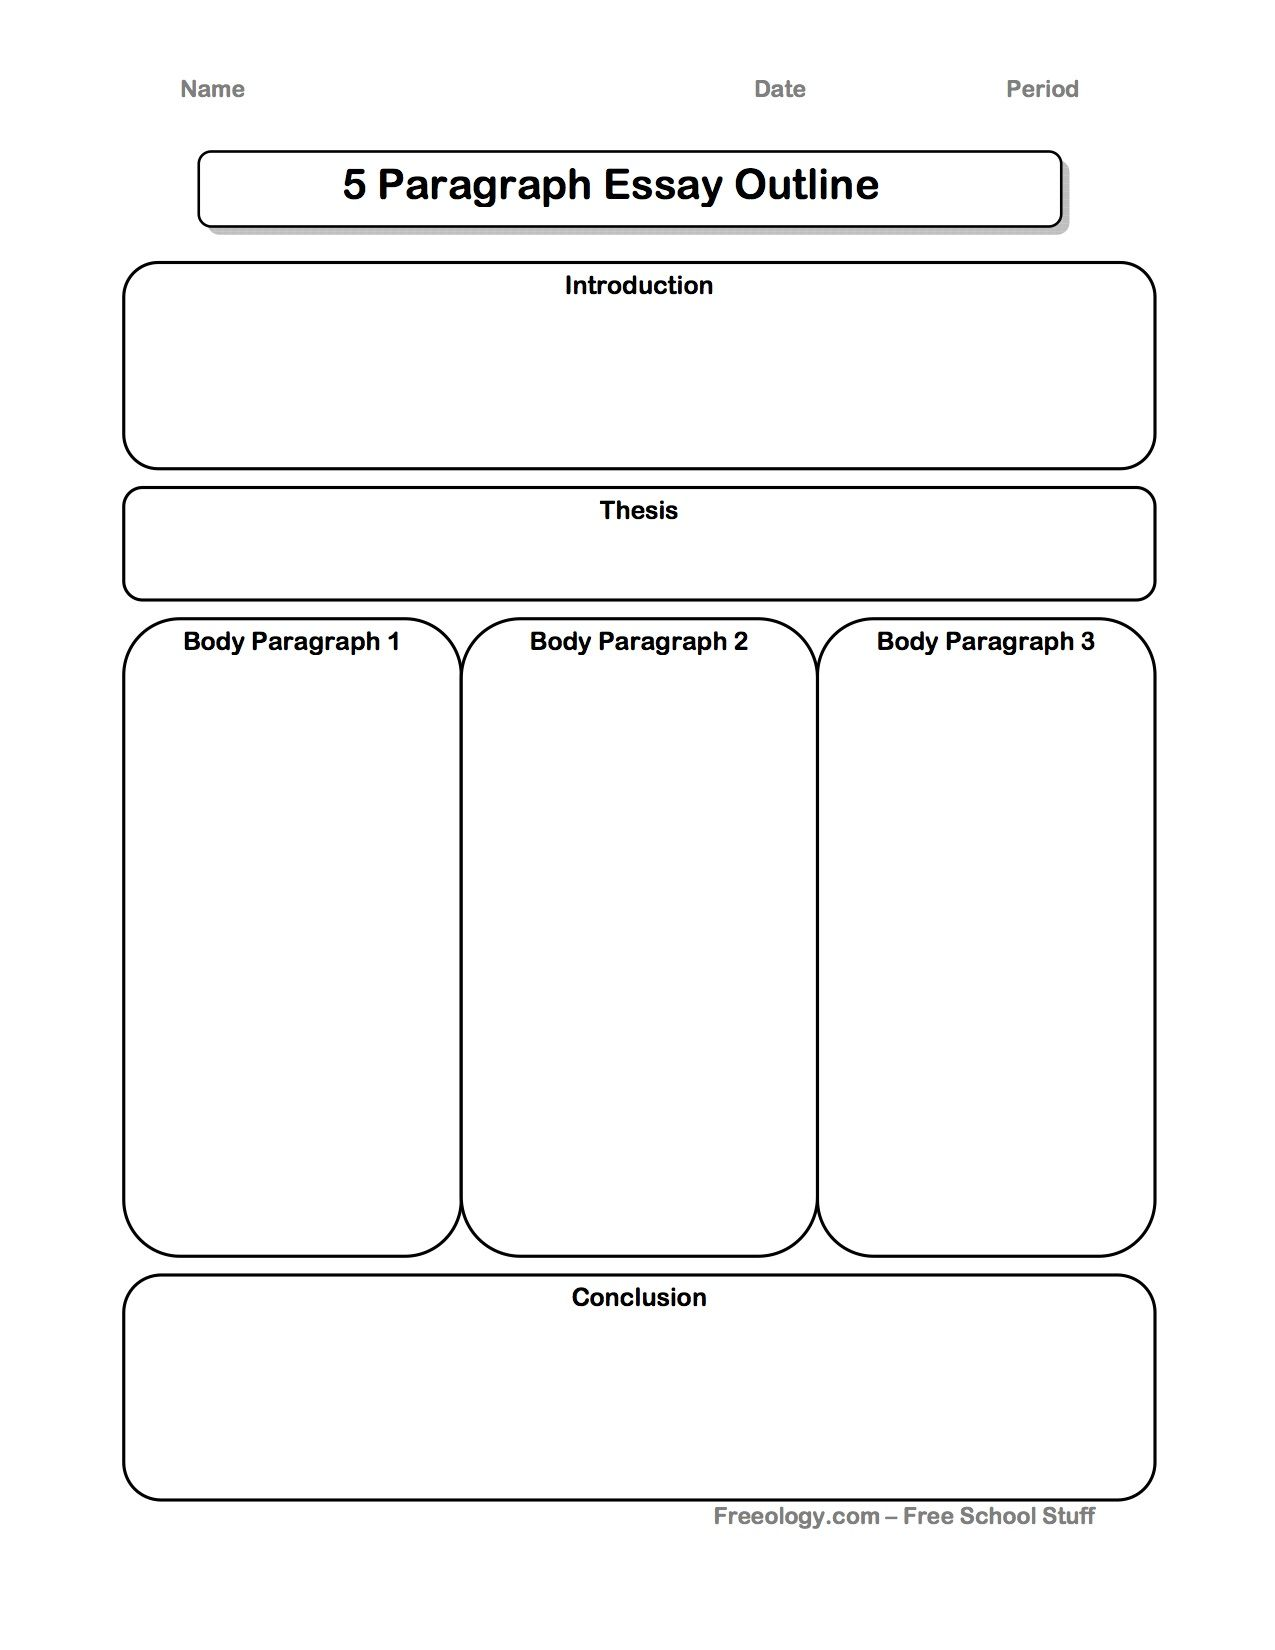 great 5 paragraph expository essay graphic organizer. i would have